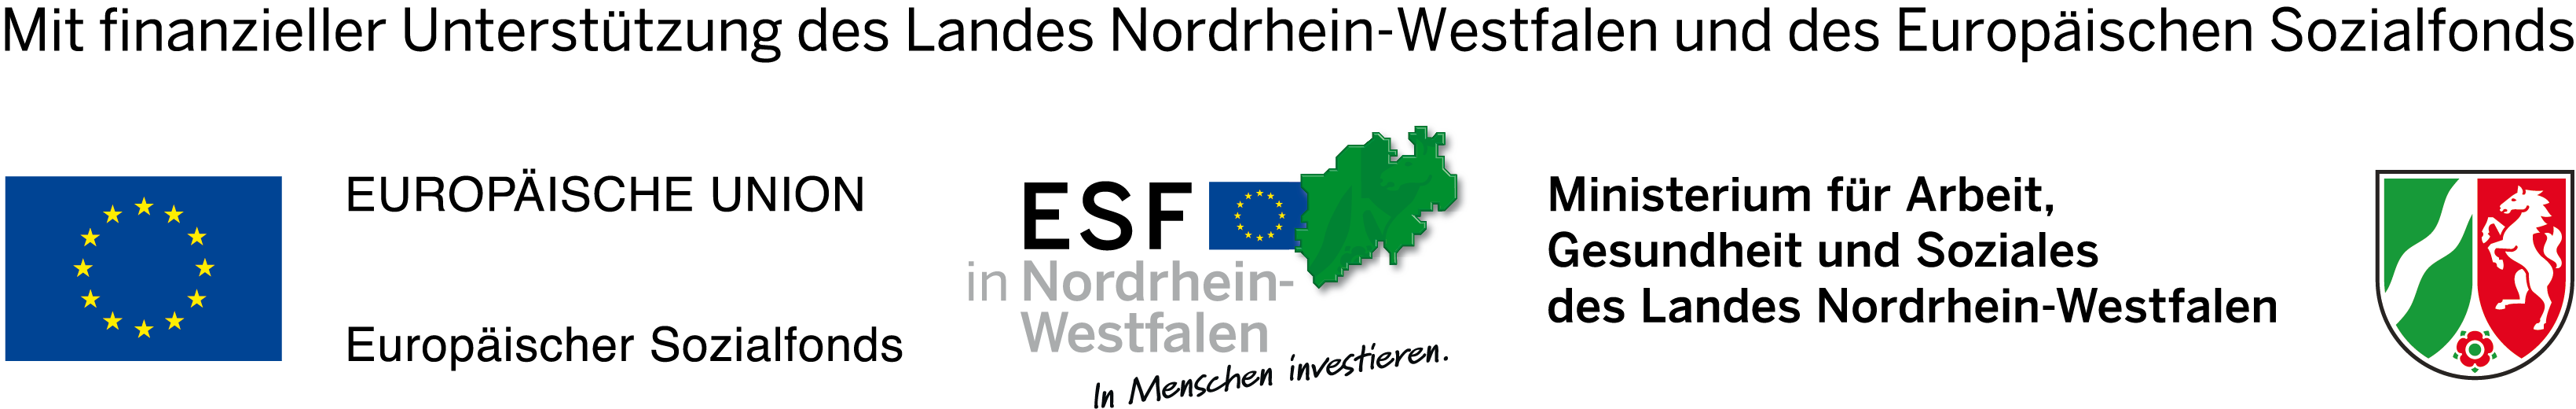 https://www.mags.nrw/sites/default/files/assets/images/eu_esf-nrw_mags_fh_4c-logo.png